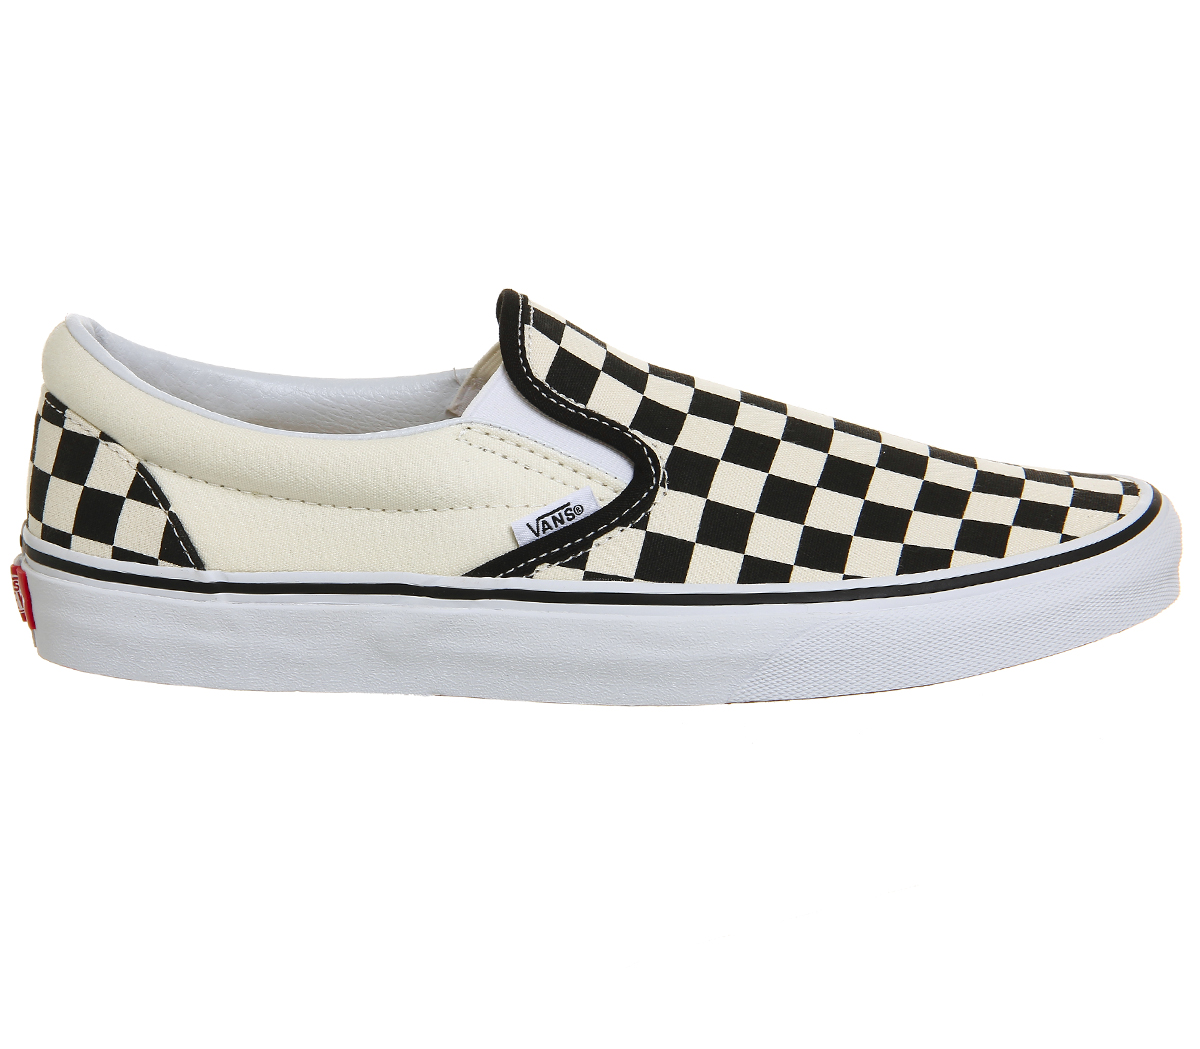 4c4a07a42c89 Sentinel Mens Vans Classic Slip On Trainers Black White Check Trainers Shoes